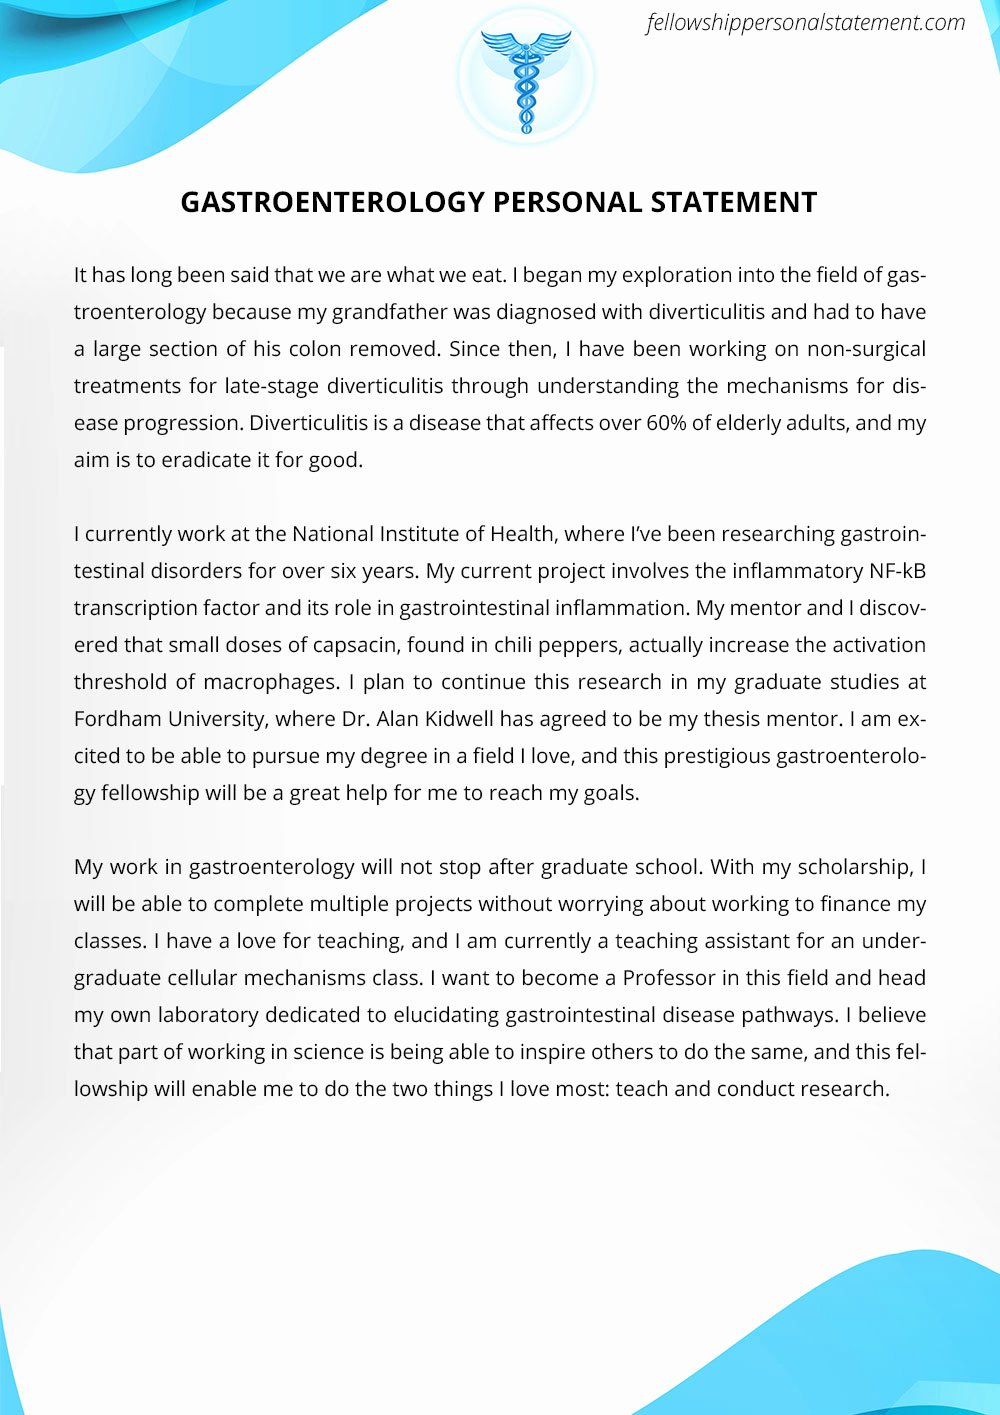 Personal Statement for Fellowship Luxury Powerful and Unique Personal Statement for Fellowship Sample